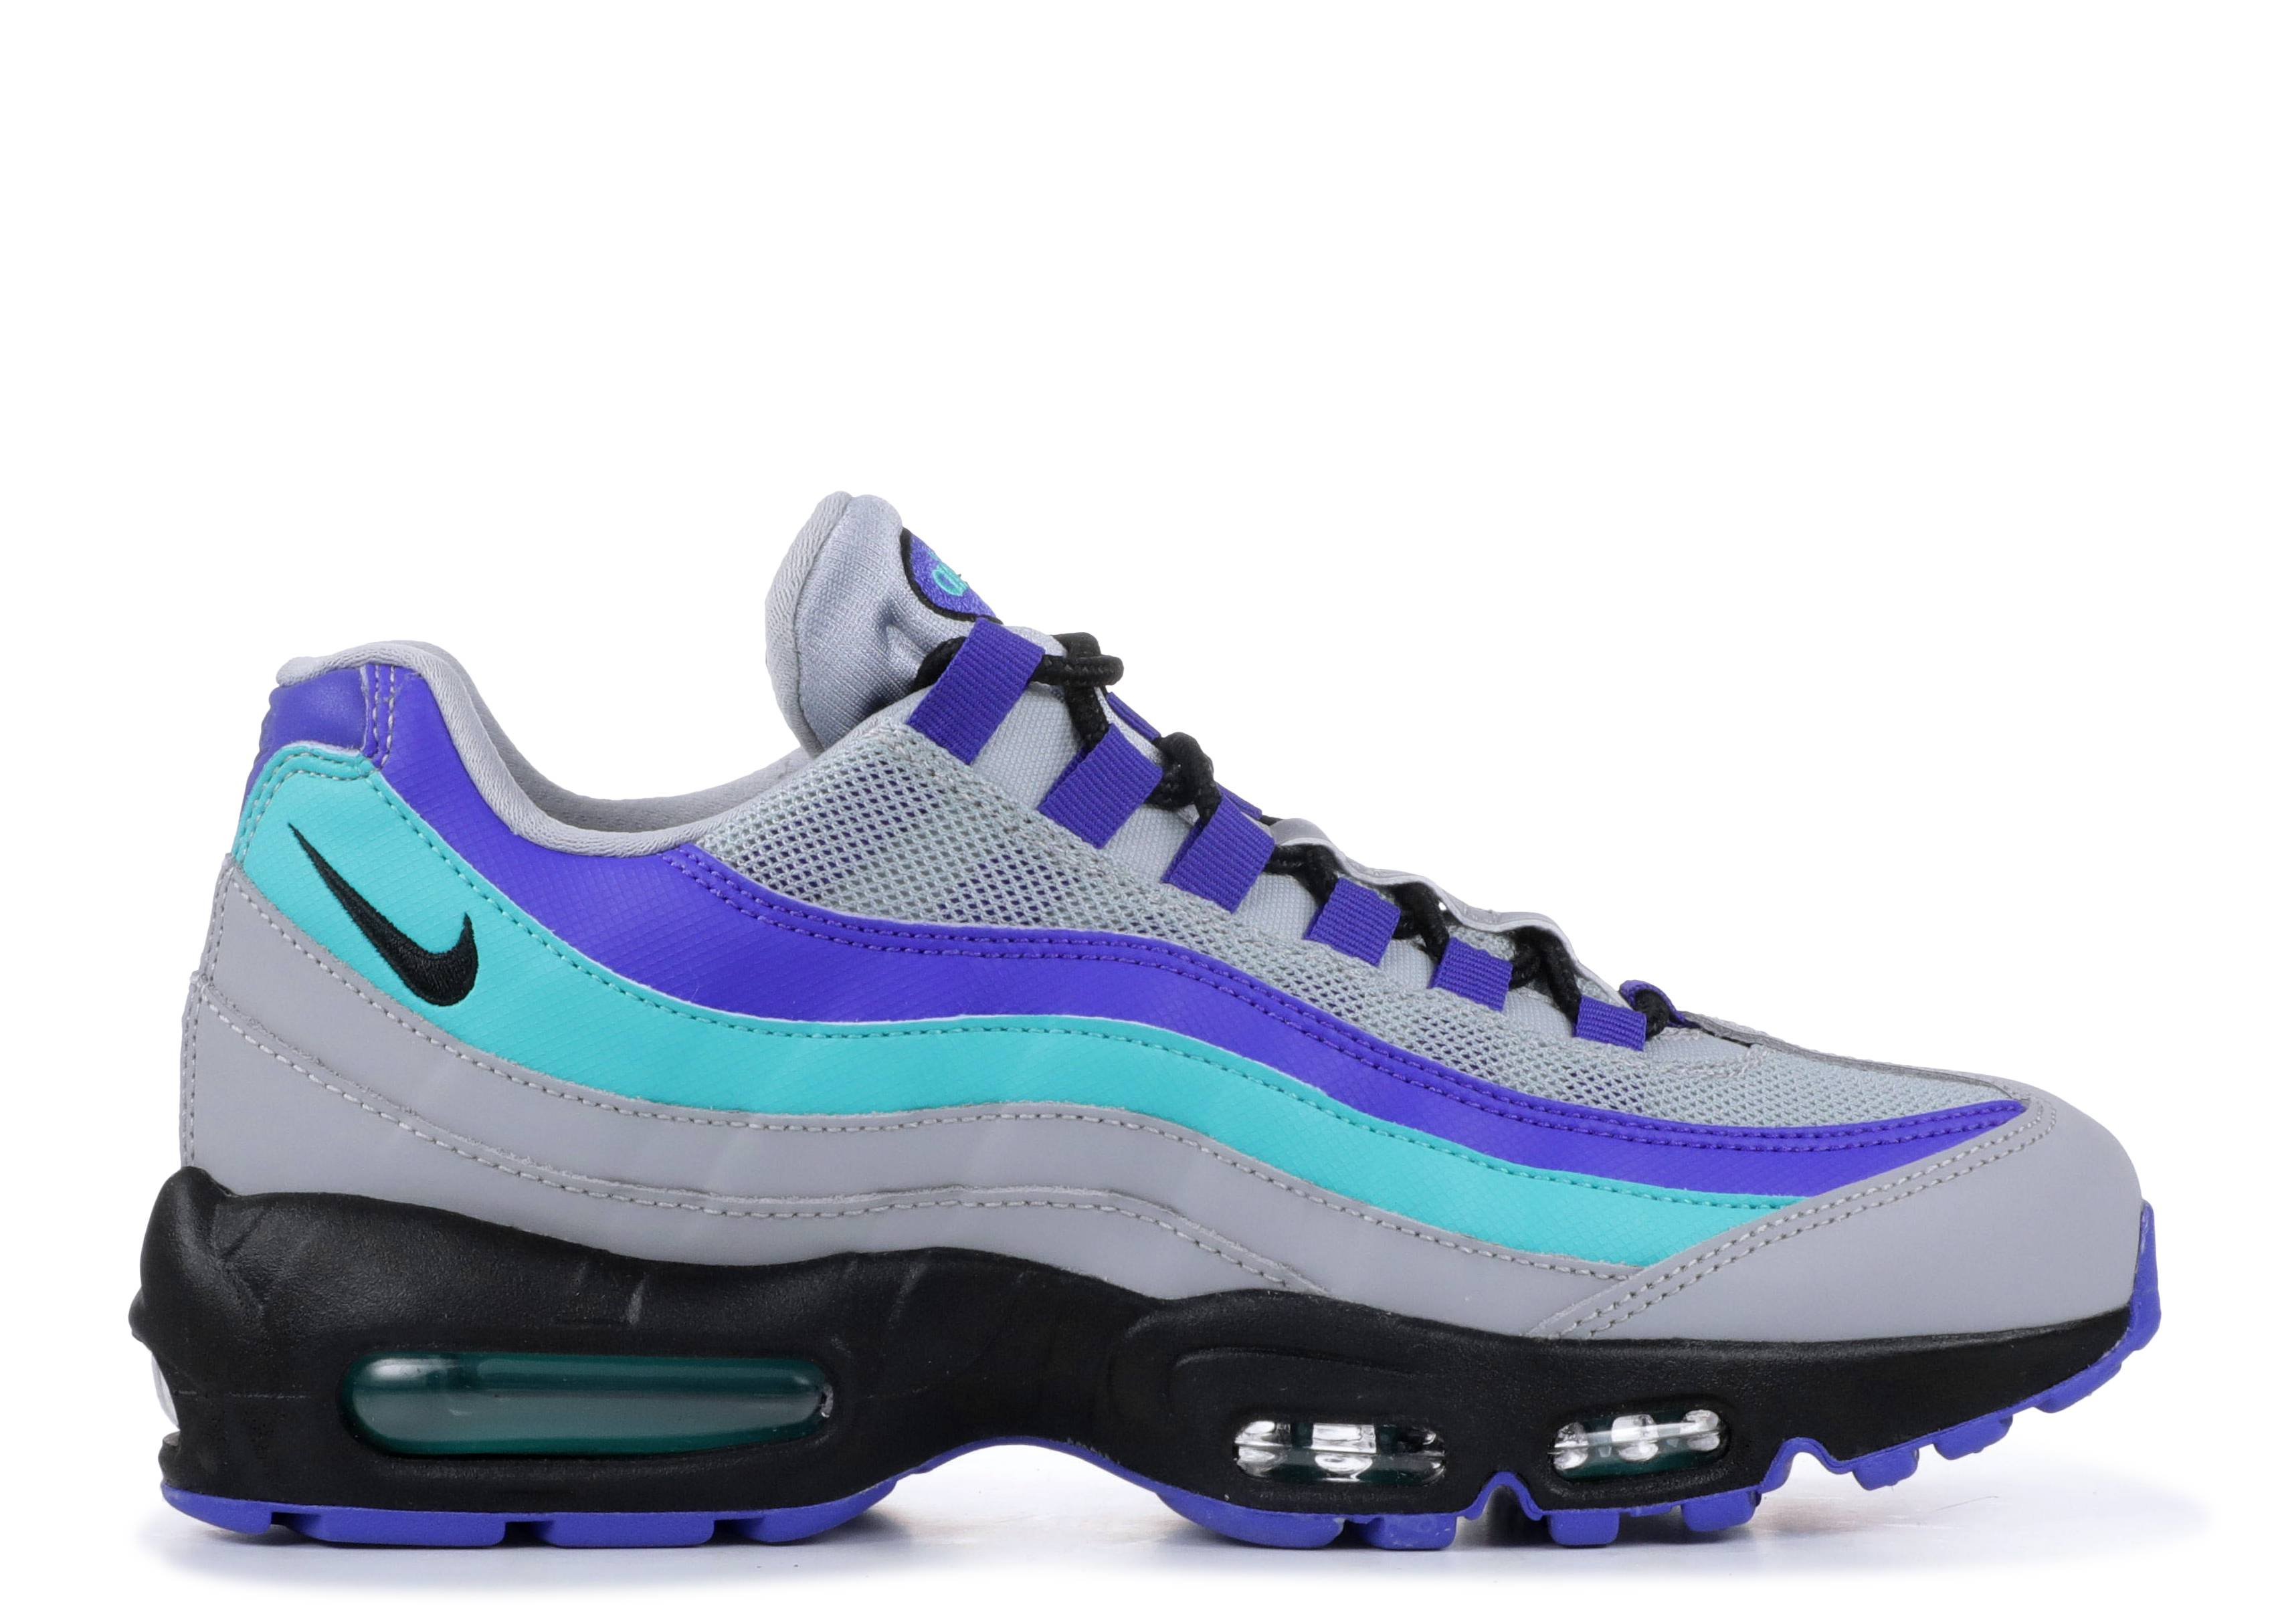 Air Max 95 Aqua Nike At2865 001 Wolf Grey Black Indigo